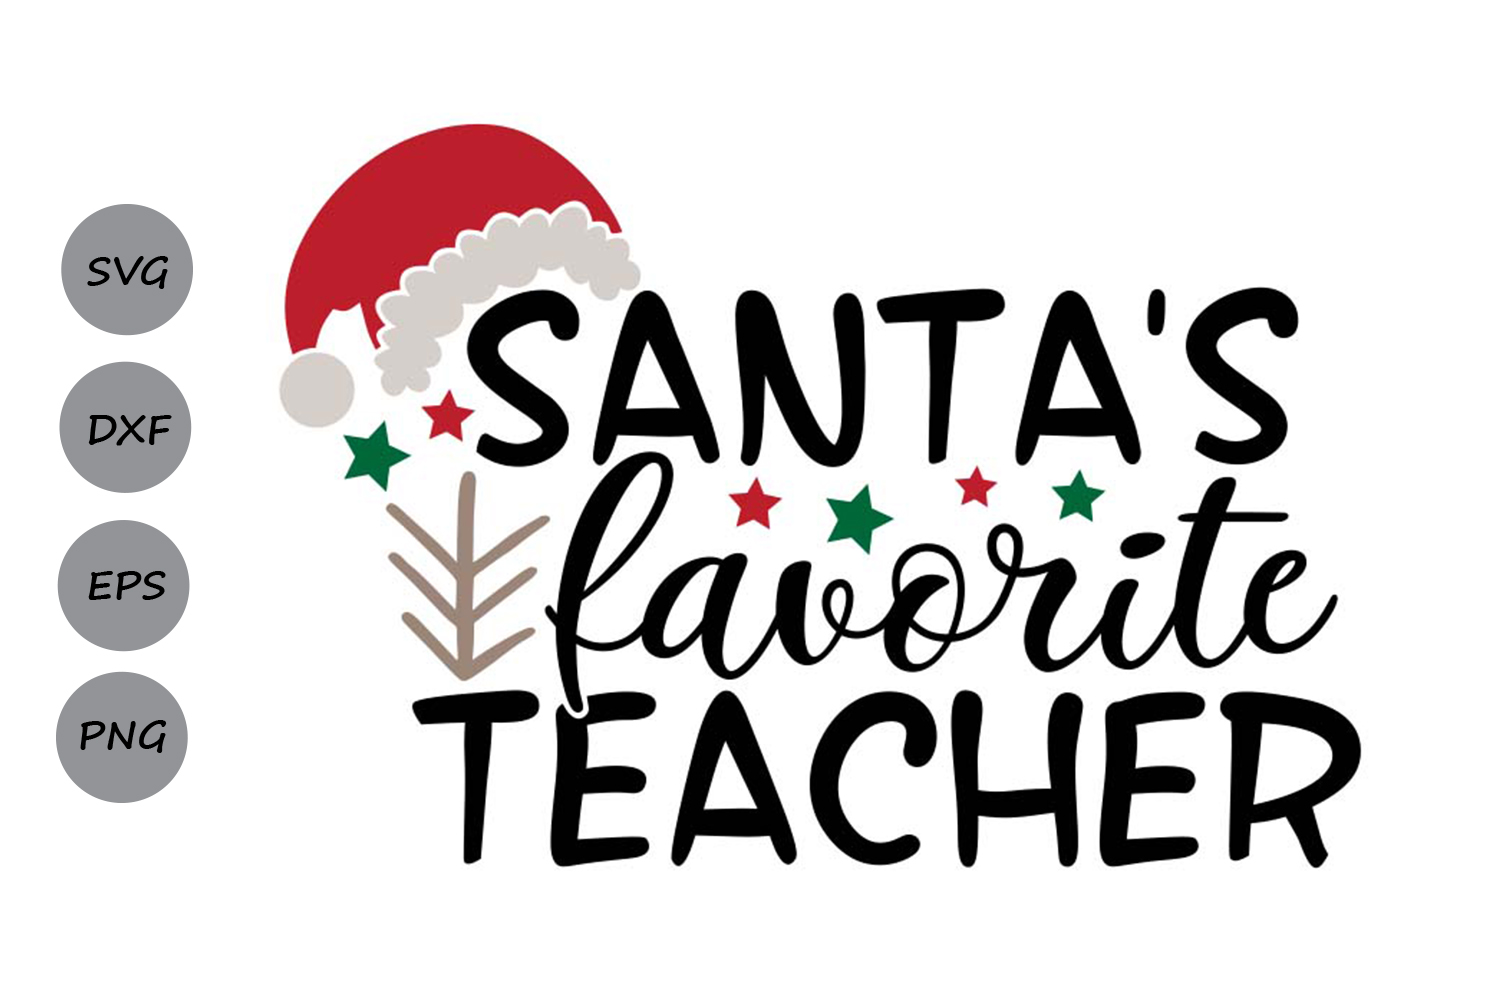 Download Free Santa S Favorite Teacher Graphic By Cosmosfineart Creative Fabrica for Cricut Explore, Silhouette and other cutting machines.